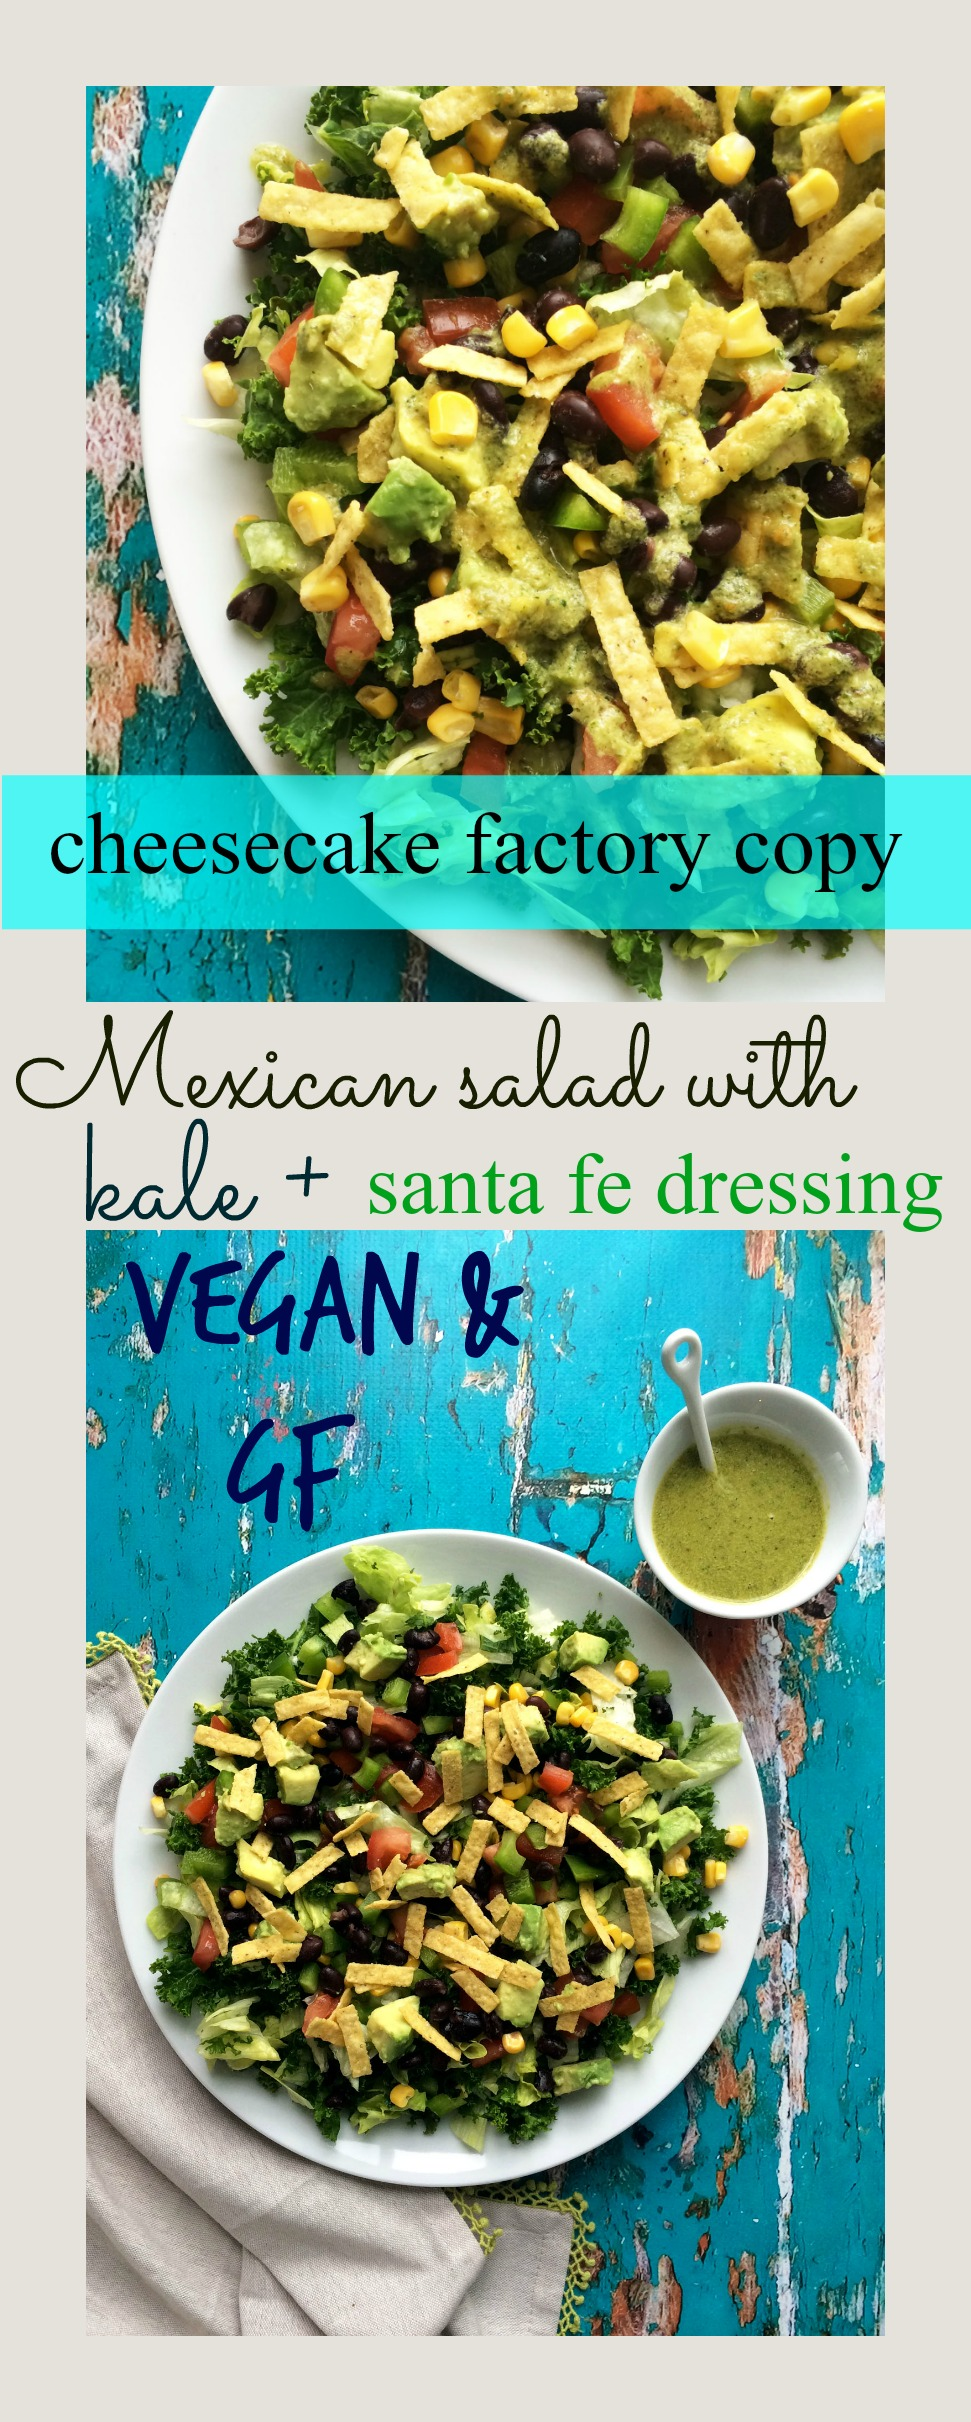 Mexican salad with kale and santa fe dressing (vegan + gf )